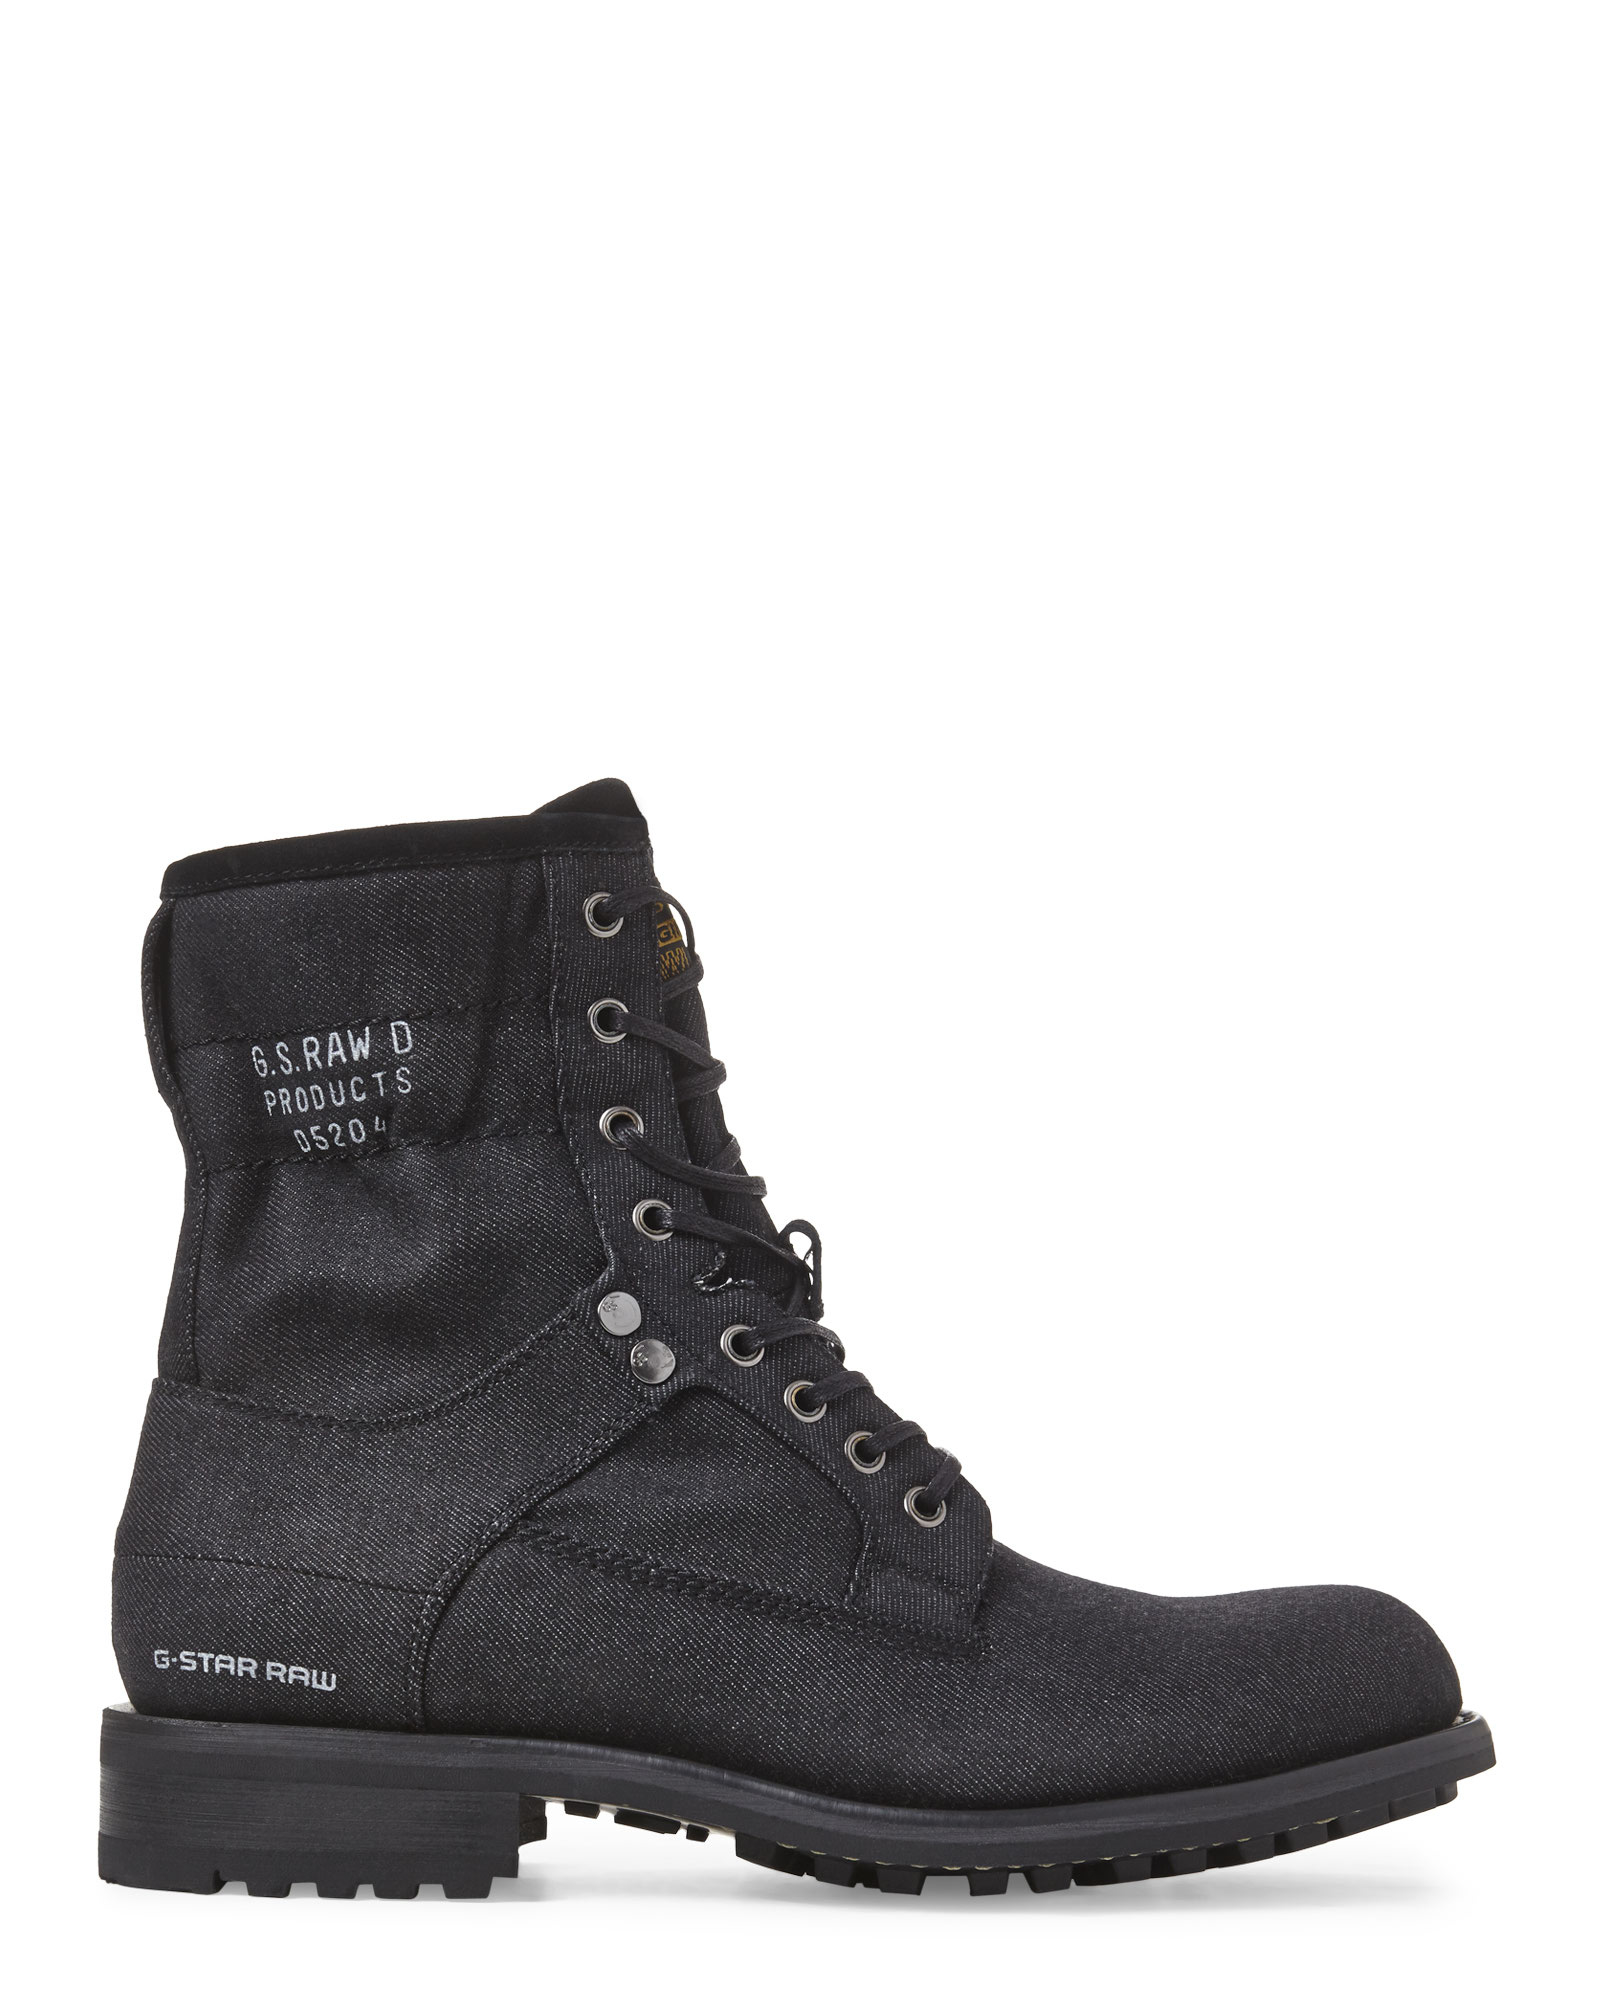 g star raw black patton v denim boots in black for men lyst. Black Bedroom Furniture Sets. Home Design Ideas